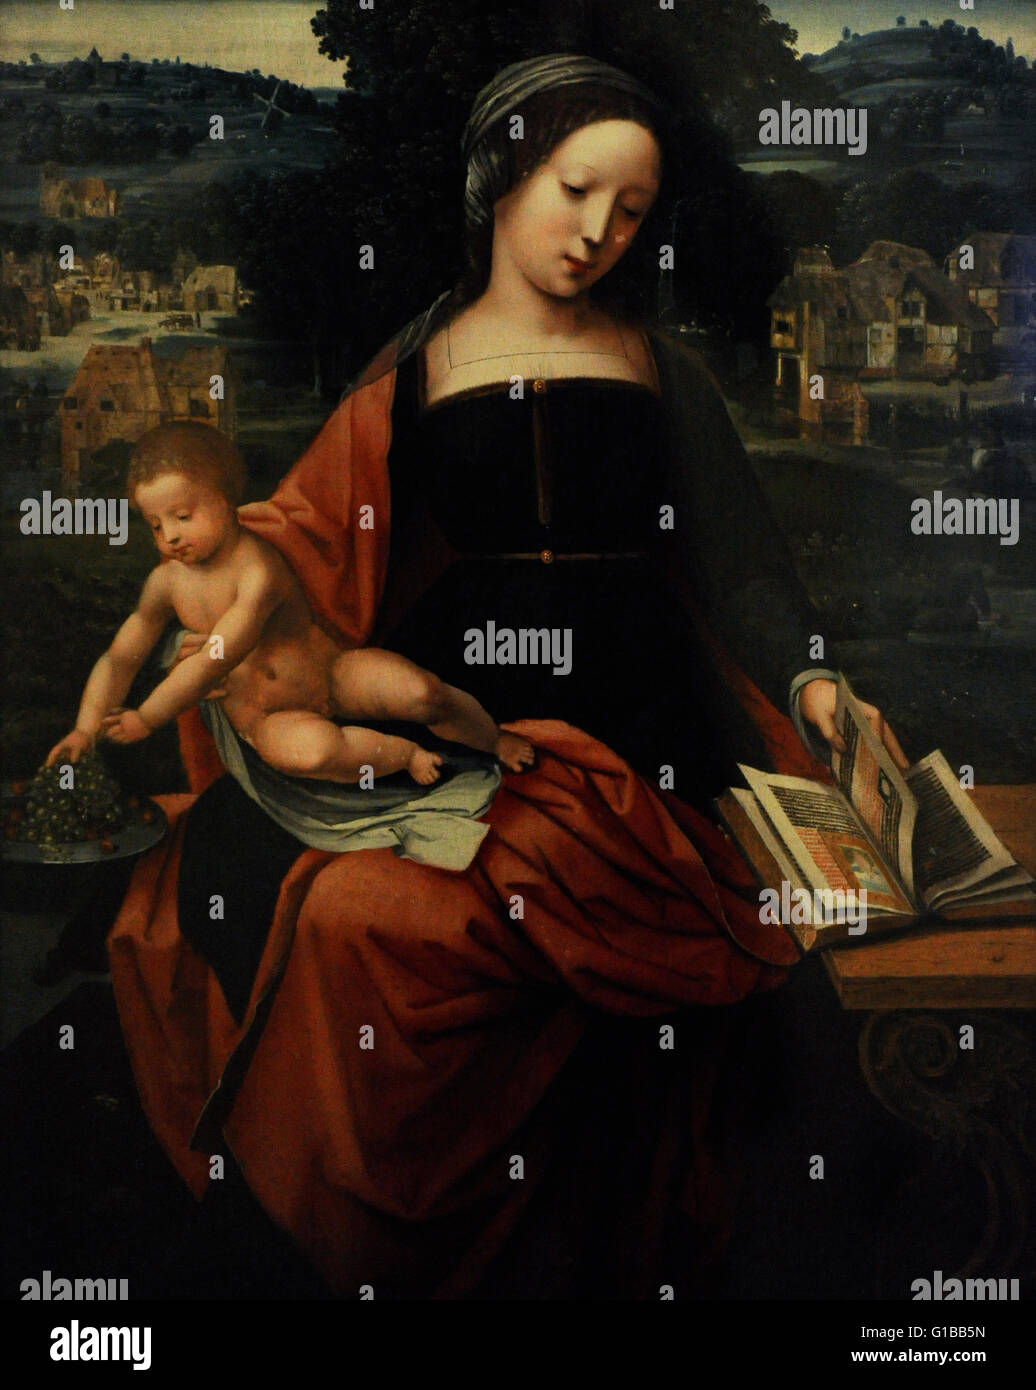 Master of the Female Half-Lengths. 16th century. The Virgin and Child. The State Hermitage Museum. Saint Petersburg. - Stock Image